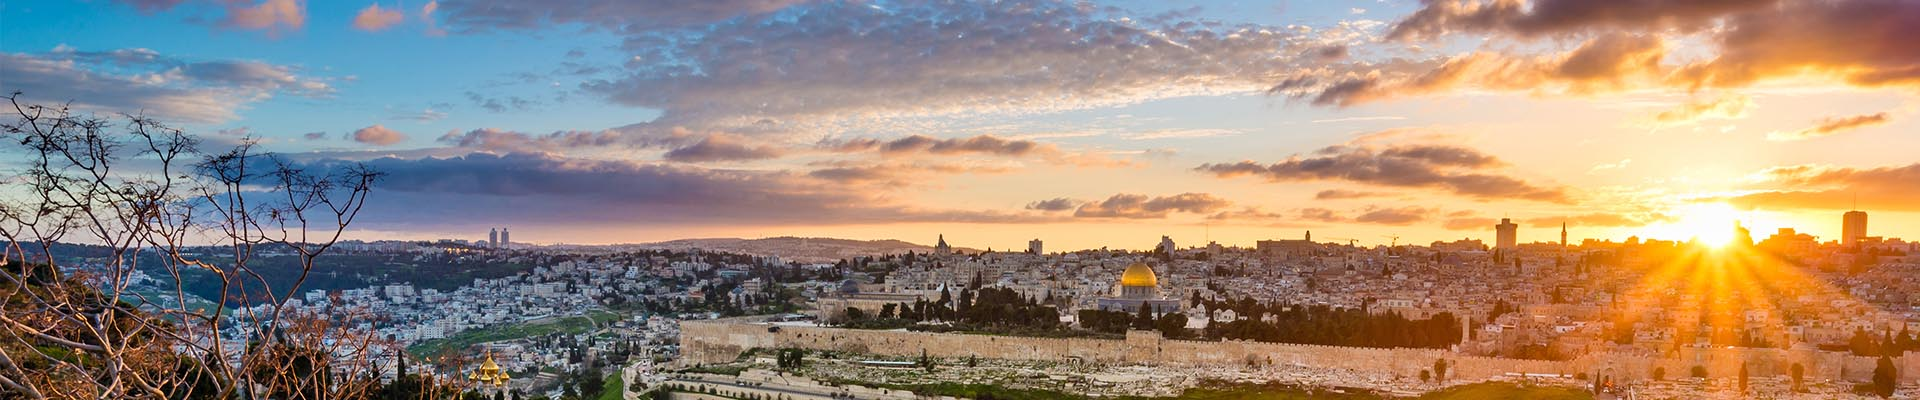 Israel Private Messianic Tours